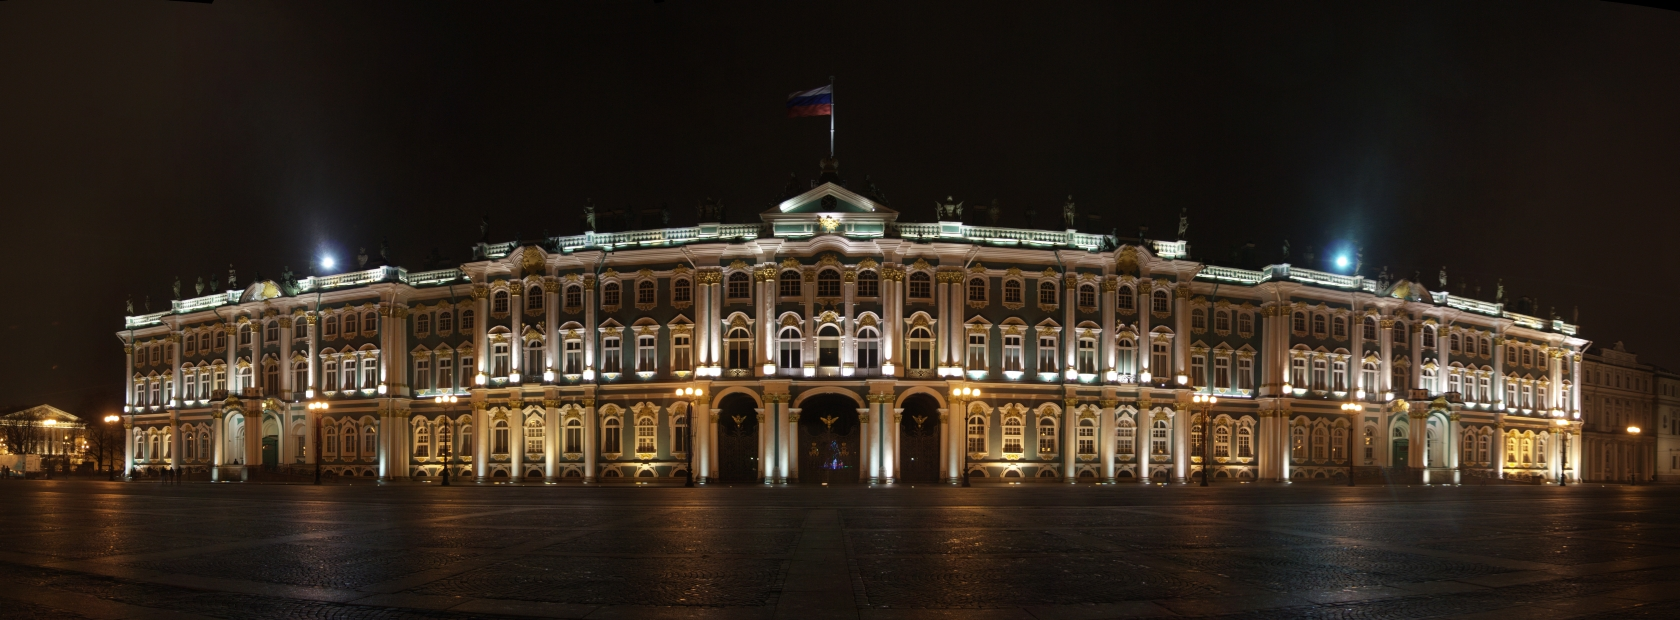 State Hermitage Museum in St. Petersburg at night